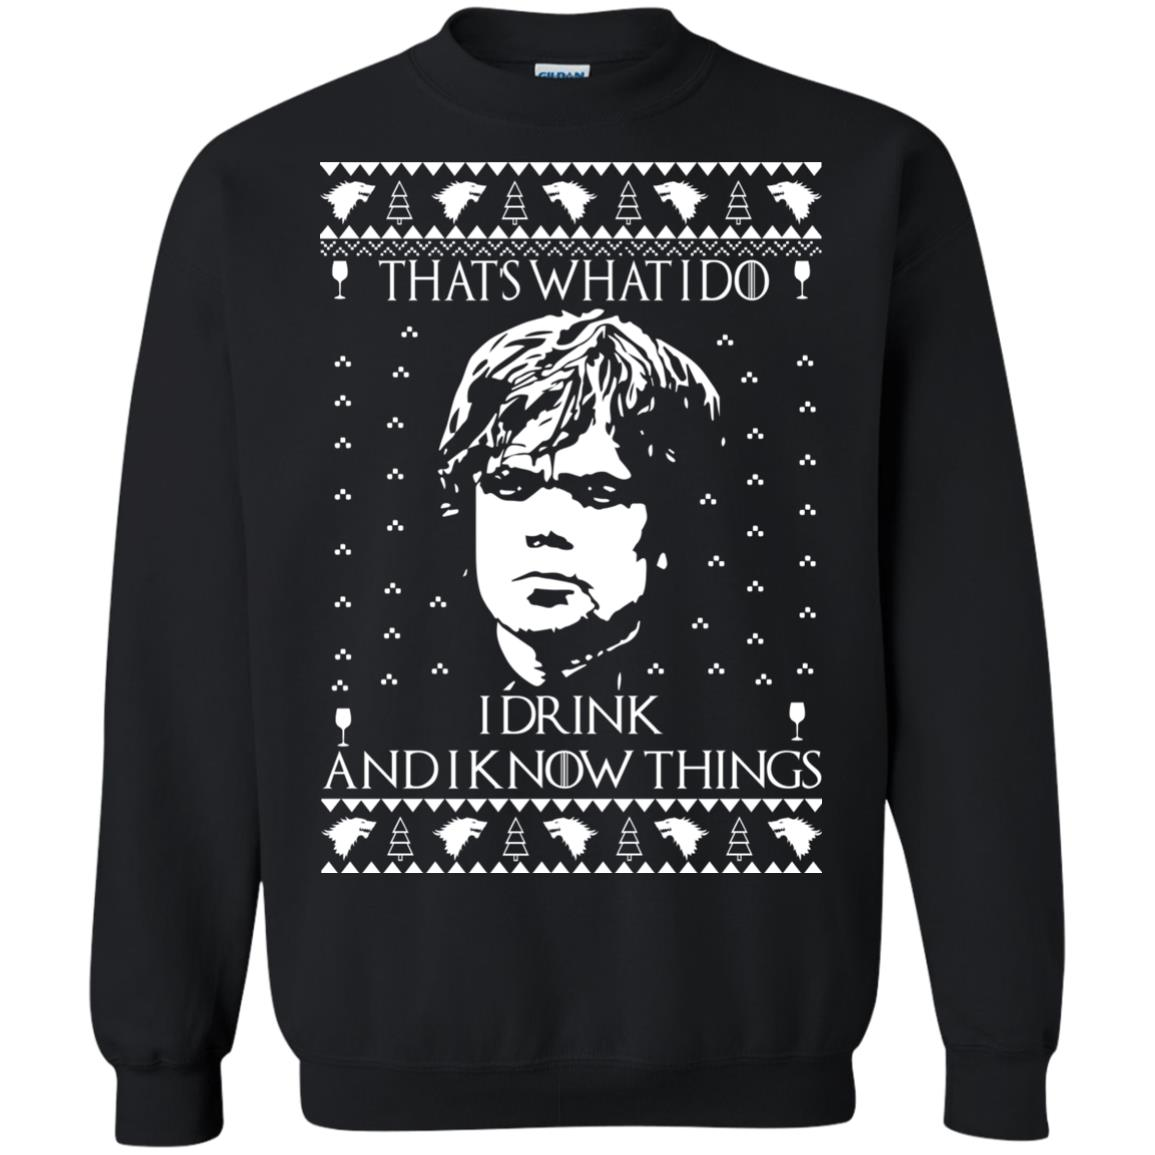 image 3007 - Tyrion Lannister I Drink and I Know Things Ugly Christmas Sweater, Shirt